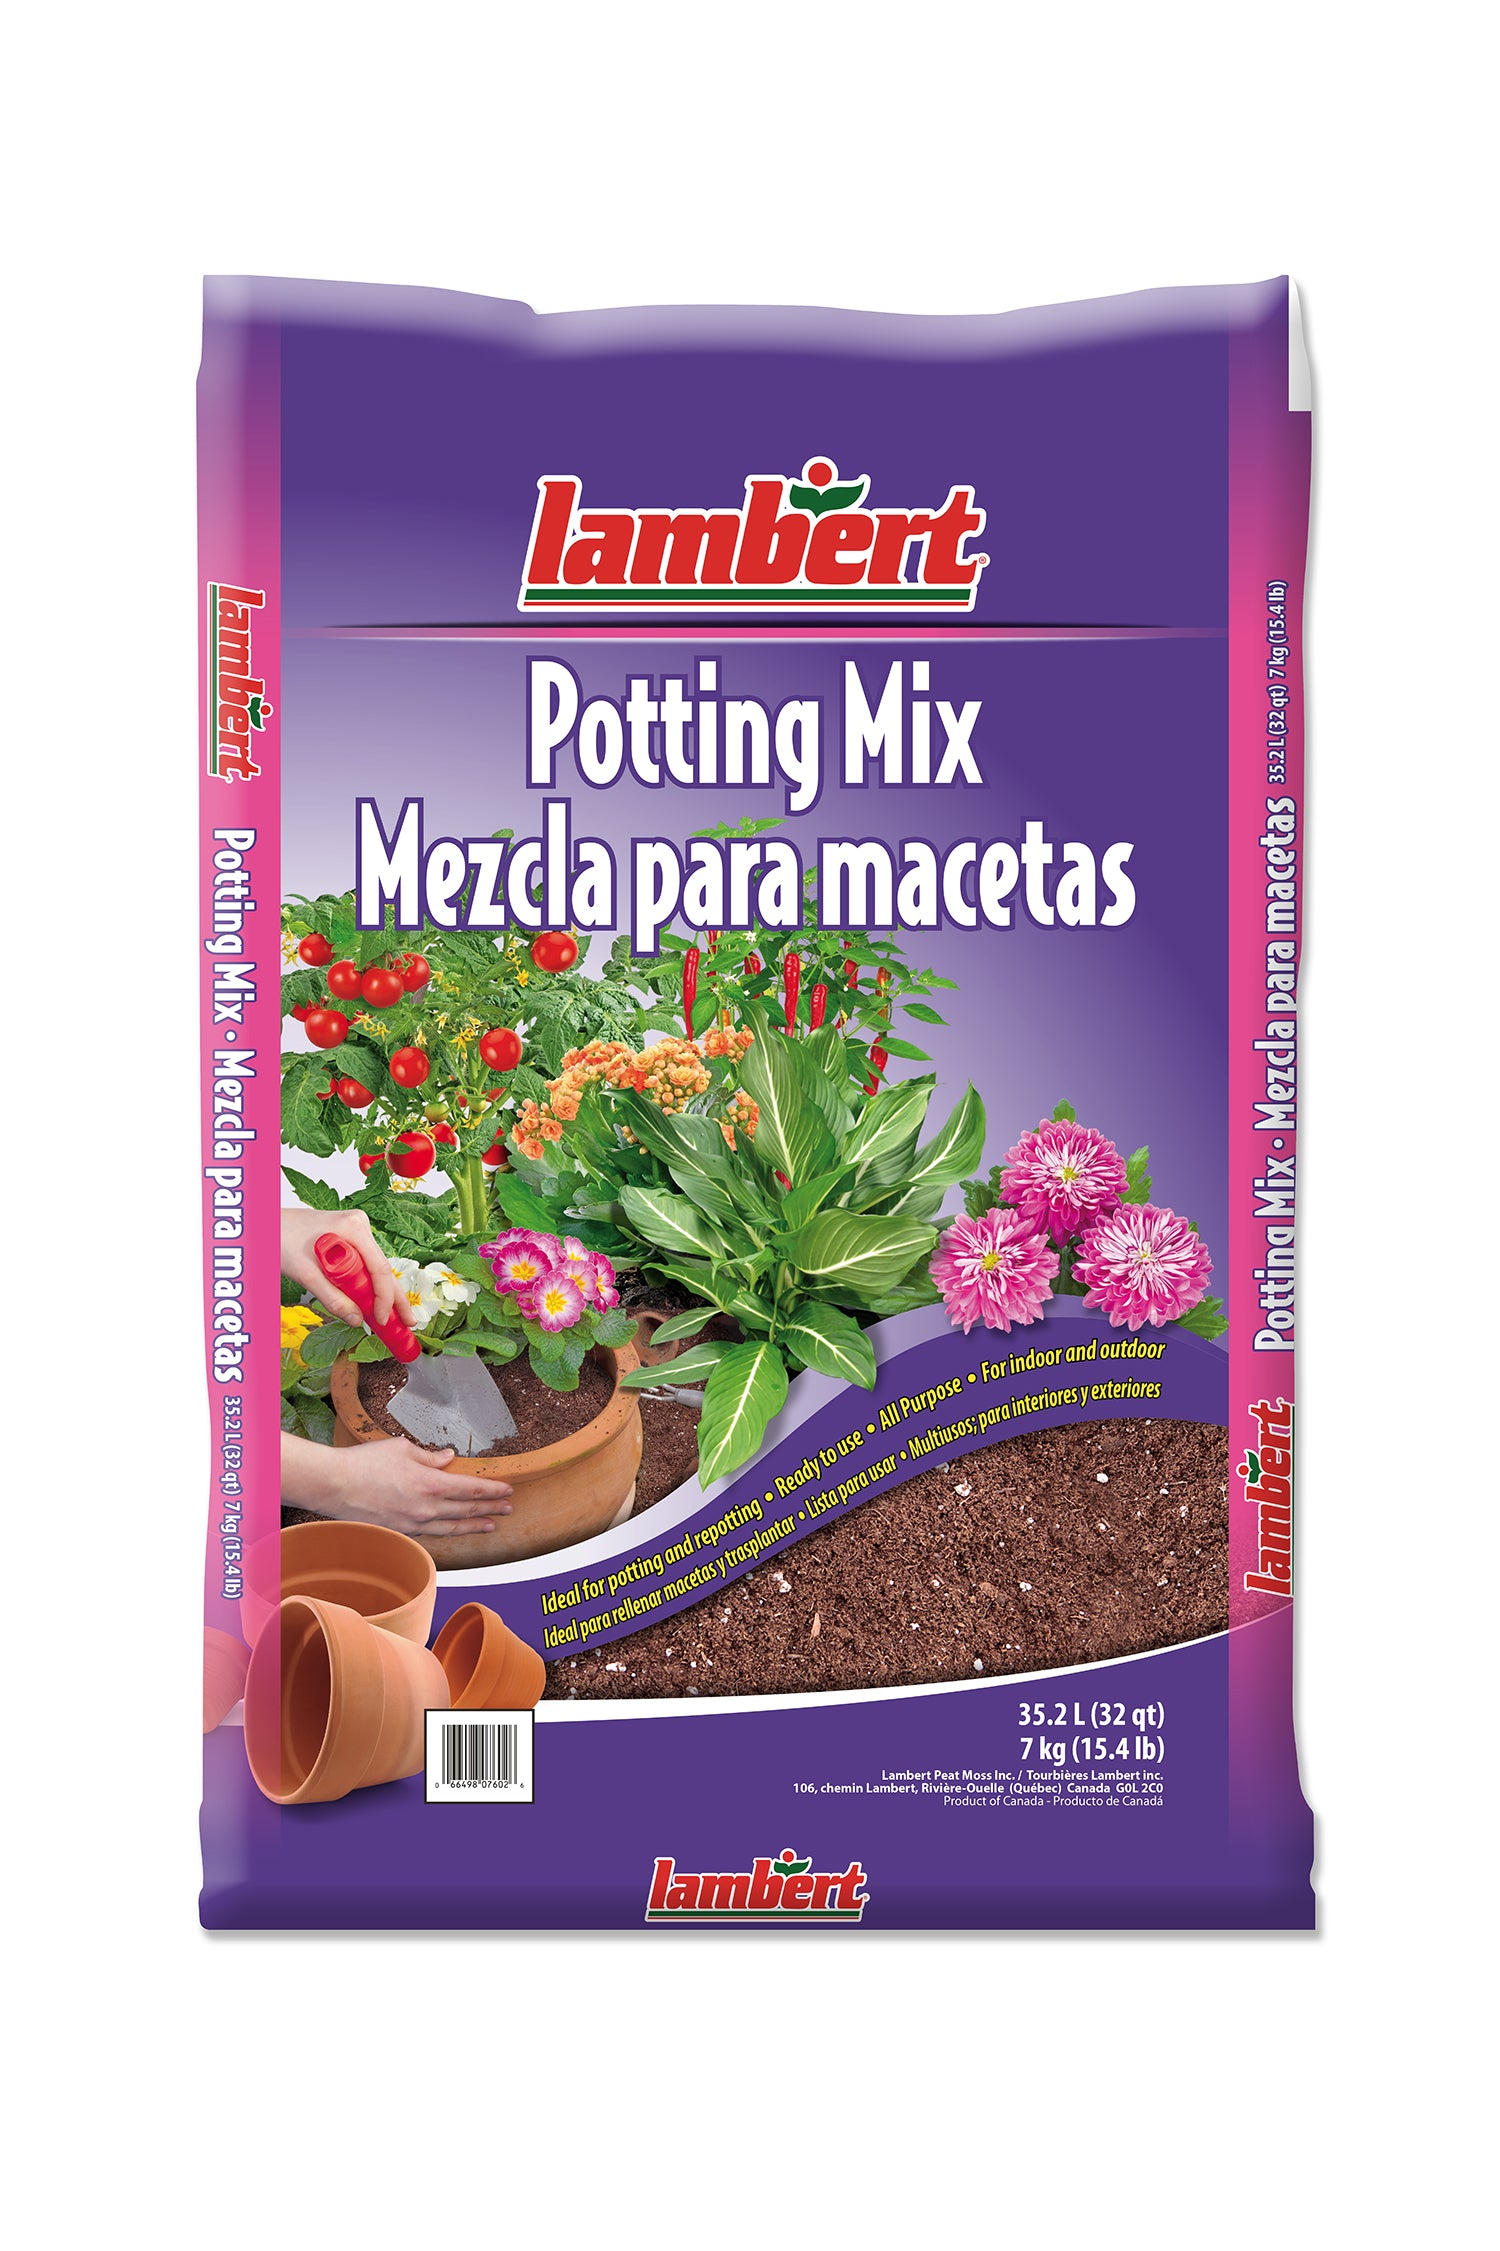 Lambert All Purpose Potting Mix - 2.0 cu ft (56.6L)